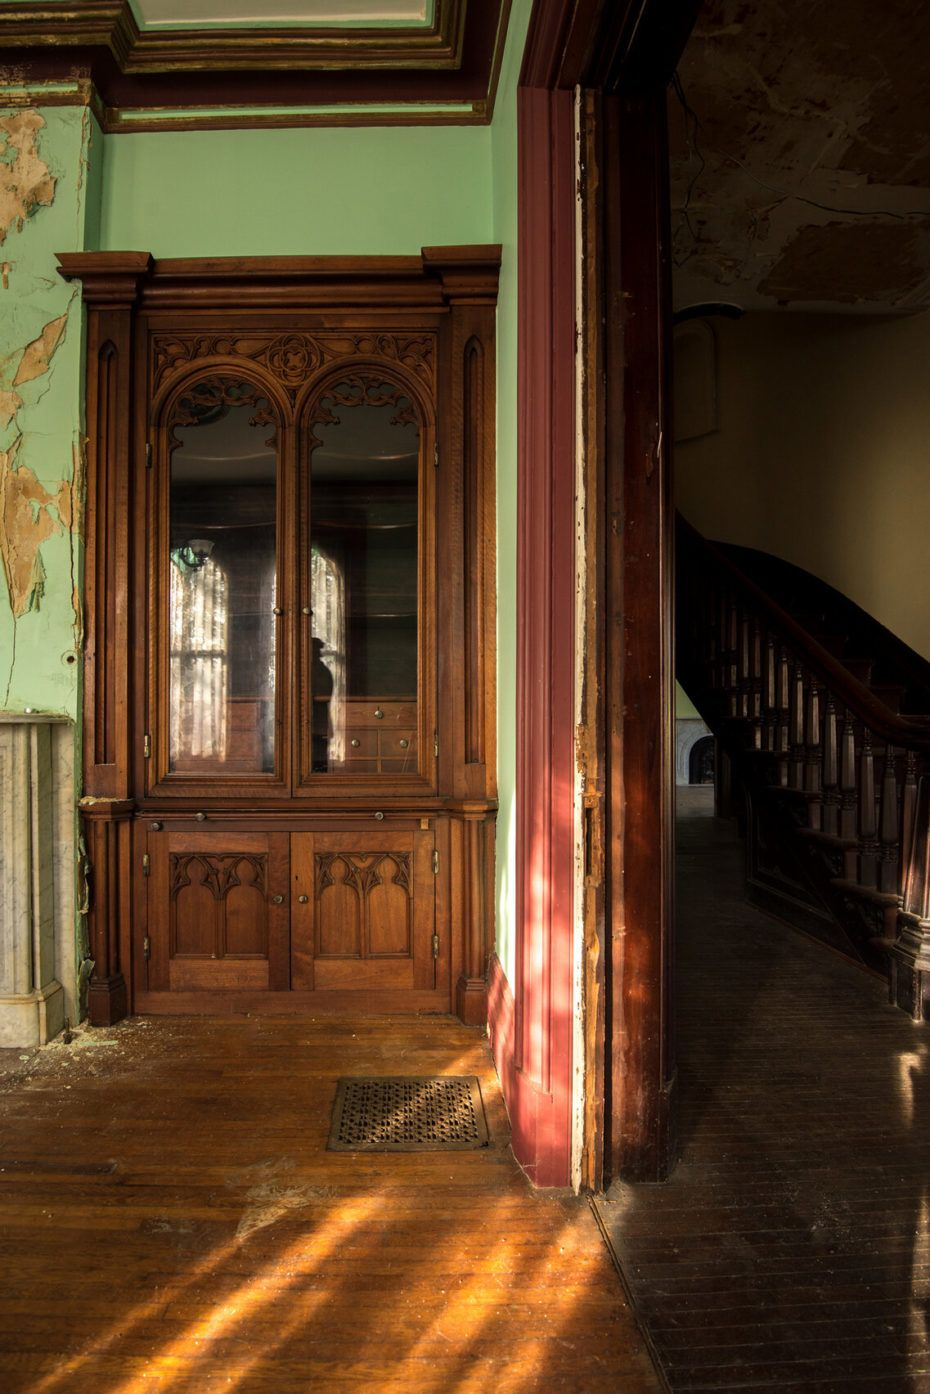 A Lonely New York Mansion For Sale Possibly Haunted Still A Rare Steal Mansions For Sale Mansions Old House Dreams